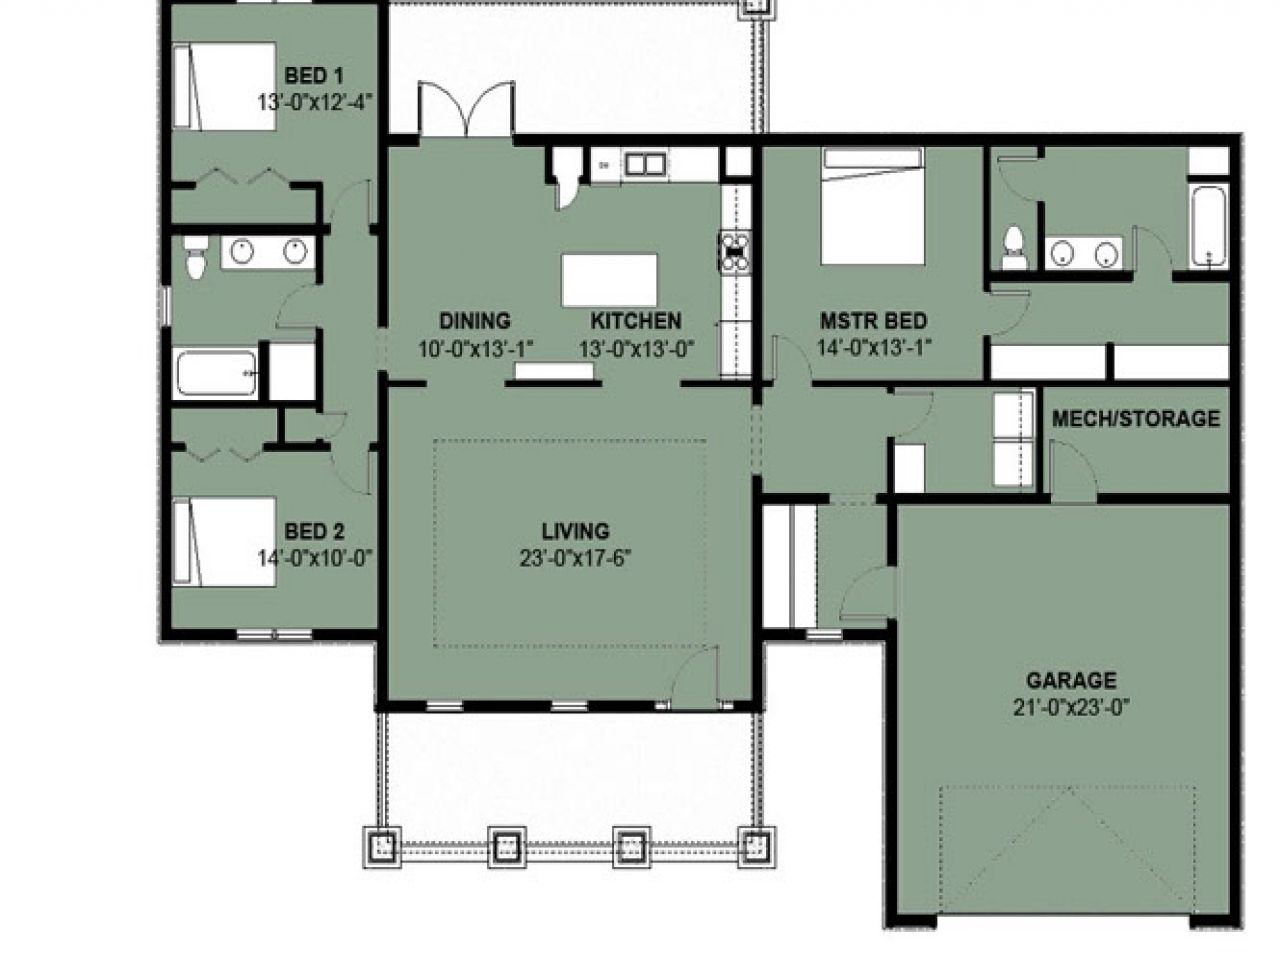 Simple 3 Bedroom House Plans Philippines Bungalow Floor Plans House Plans Australia House Plans